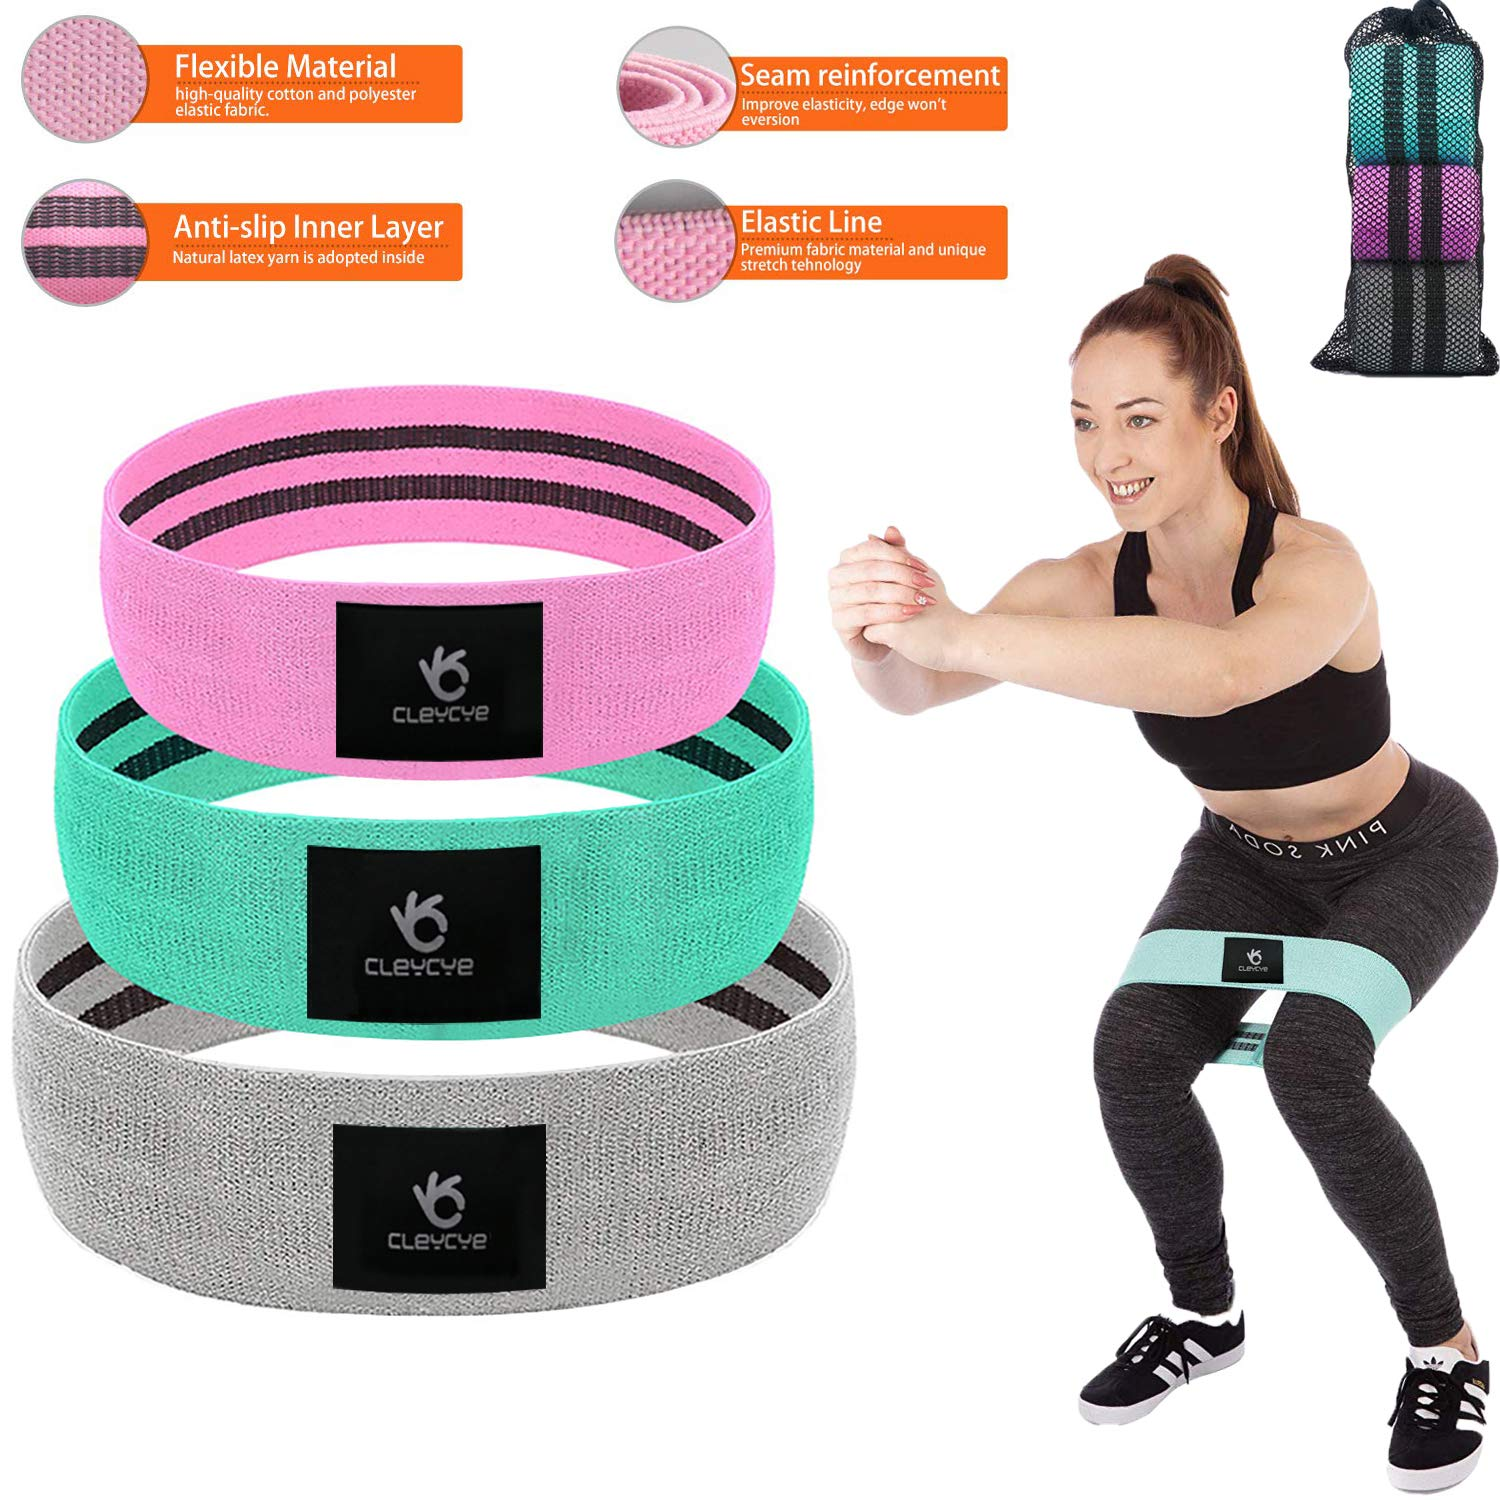 3PCS Resistance Bands for Legs and Butt, Hip Resistance Bands Set for Men Women ,Booty Exercise Bands for Leg Butt Thighs Glute , Thick Resistance Bands Cotton Non-Slip Heavy Wide Resistance Bands